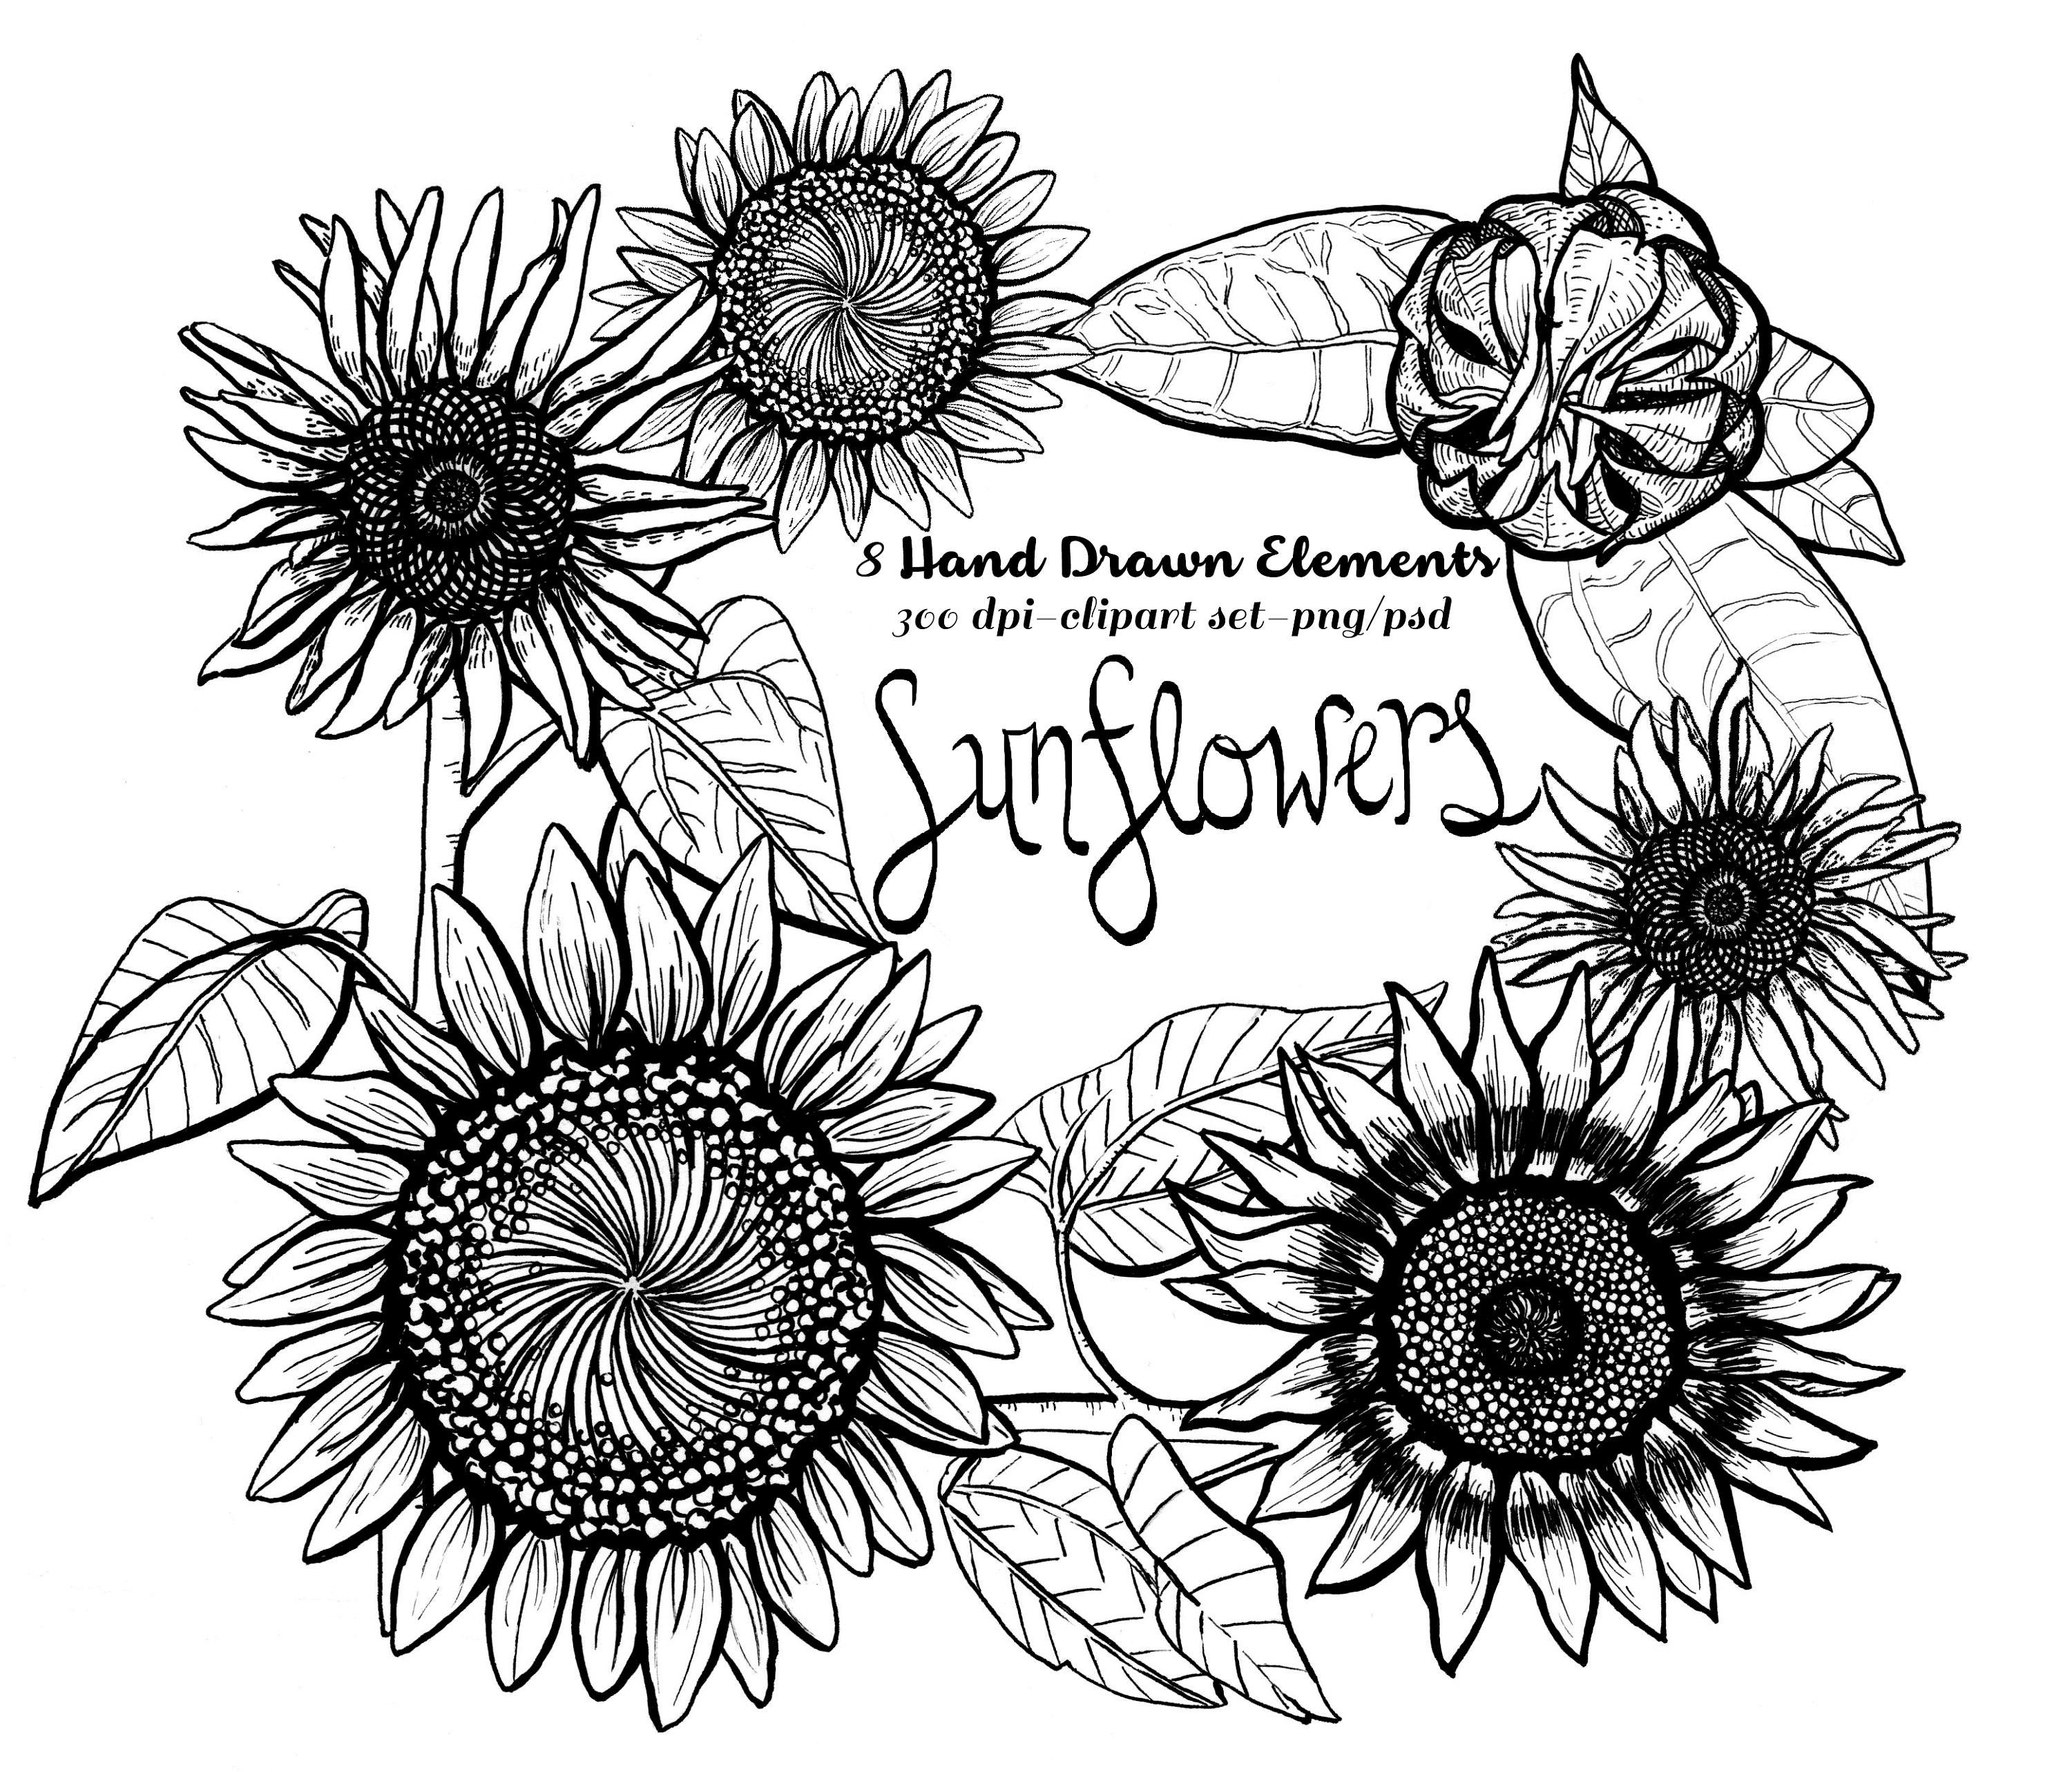 drawing of a sunflower sunflower drawing by brandi bruggman a sunflower of drawing